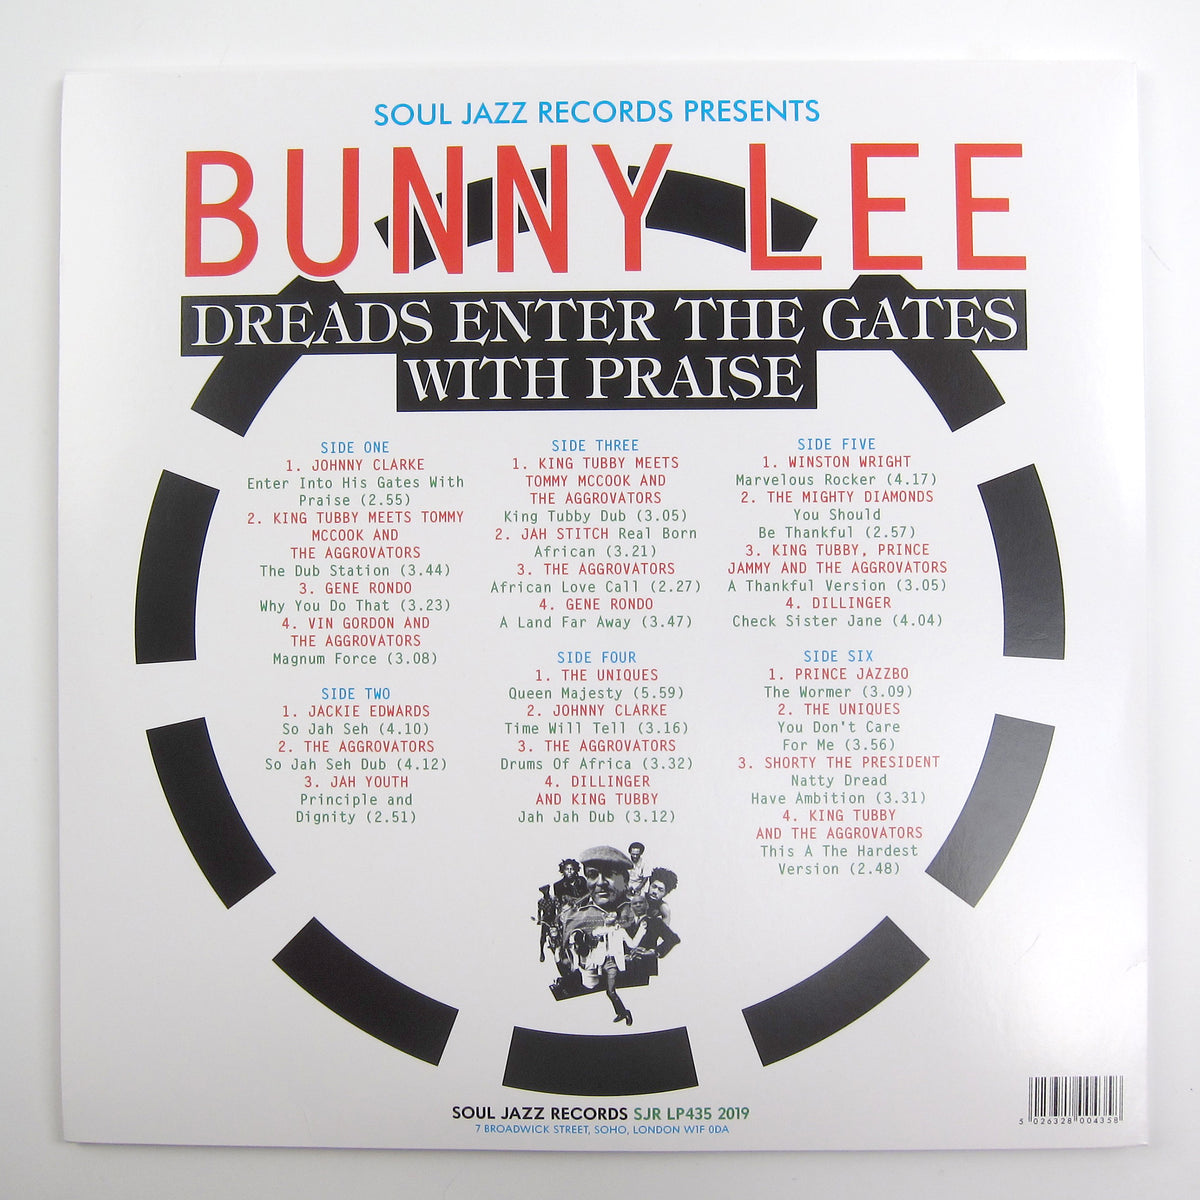 Bunny Lee: Soul Jazz Records Presents Bunny Lee - Dreads Enter The Gates With Praise Vinyl 3LP